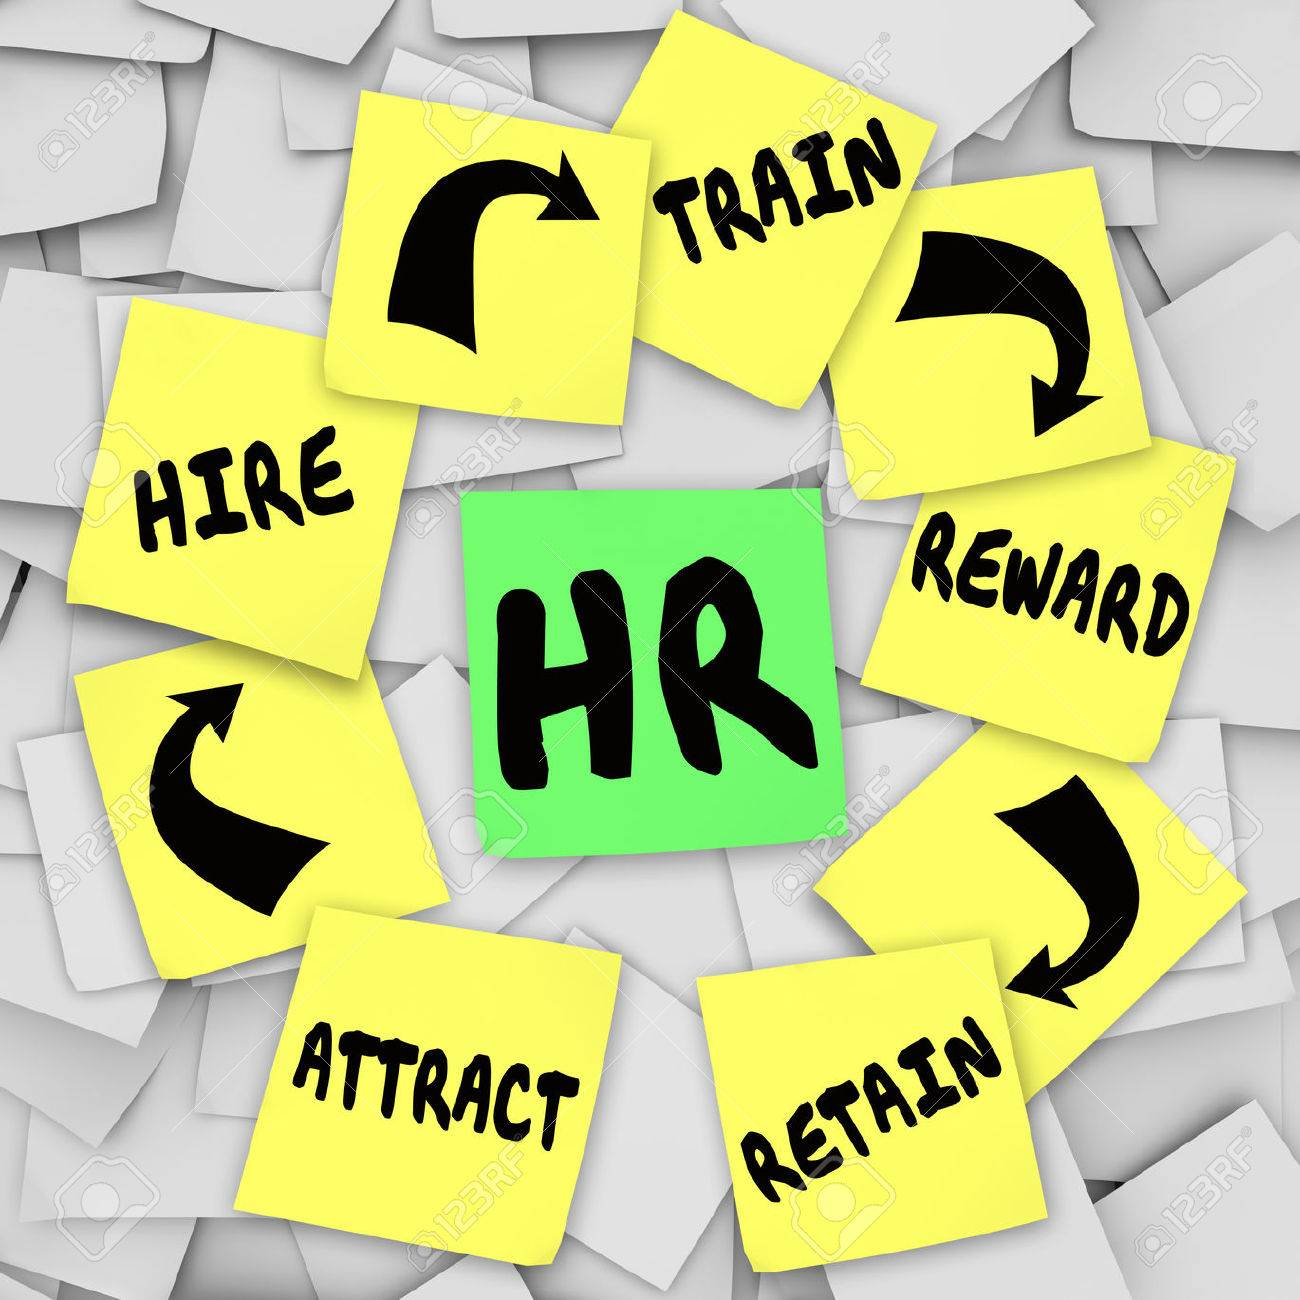 HR Or Personnel Words On A Sticky Note Surrounded By Advice On ...